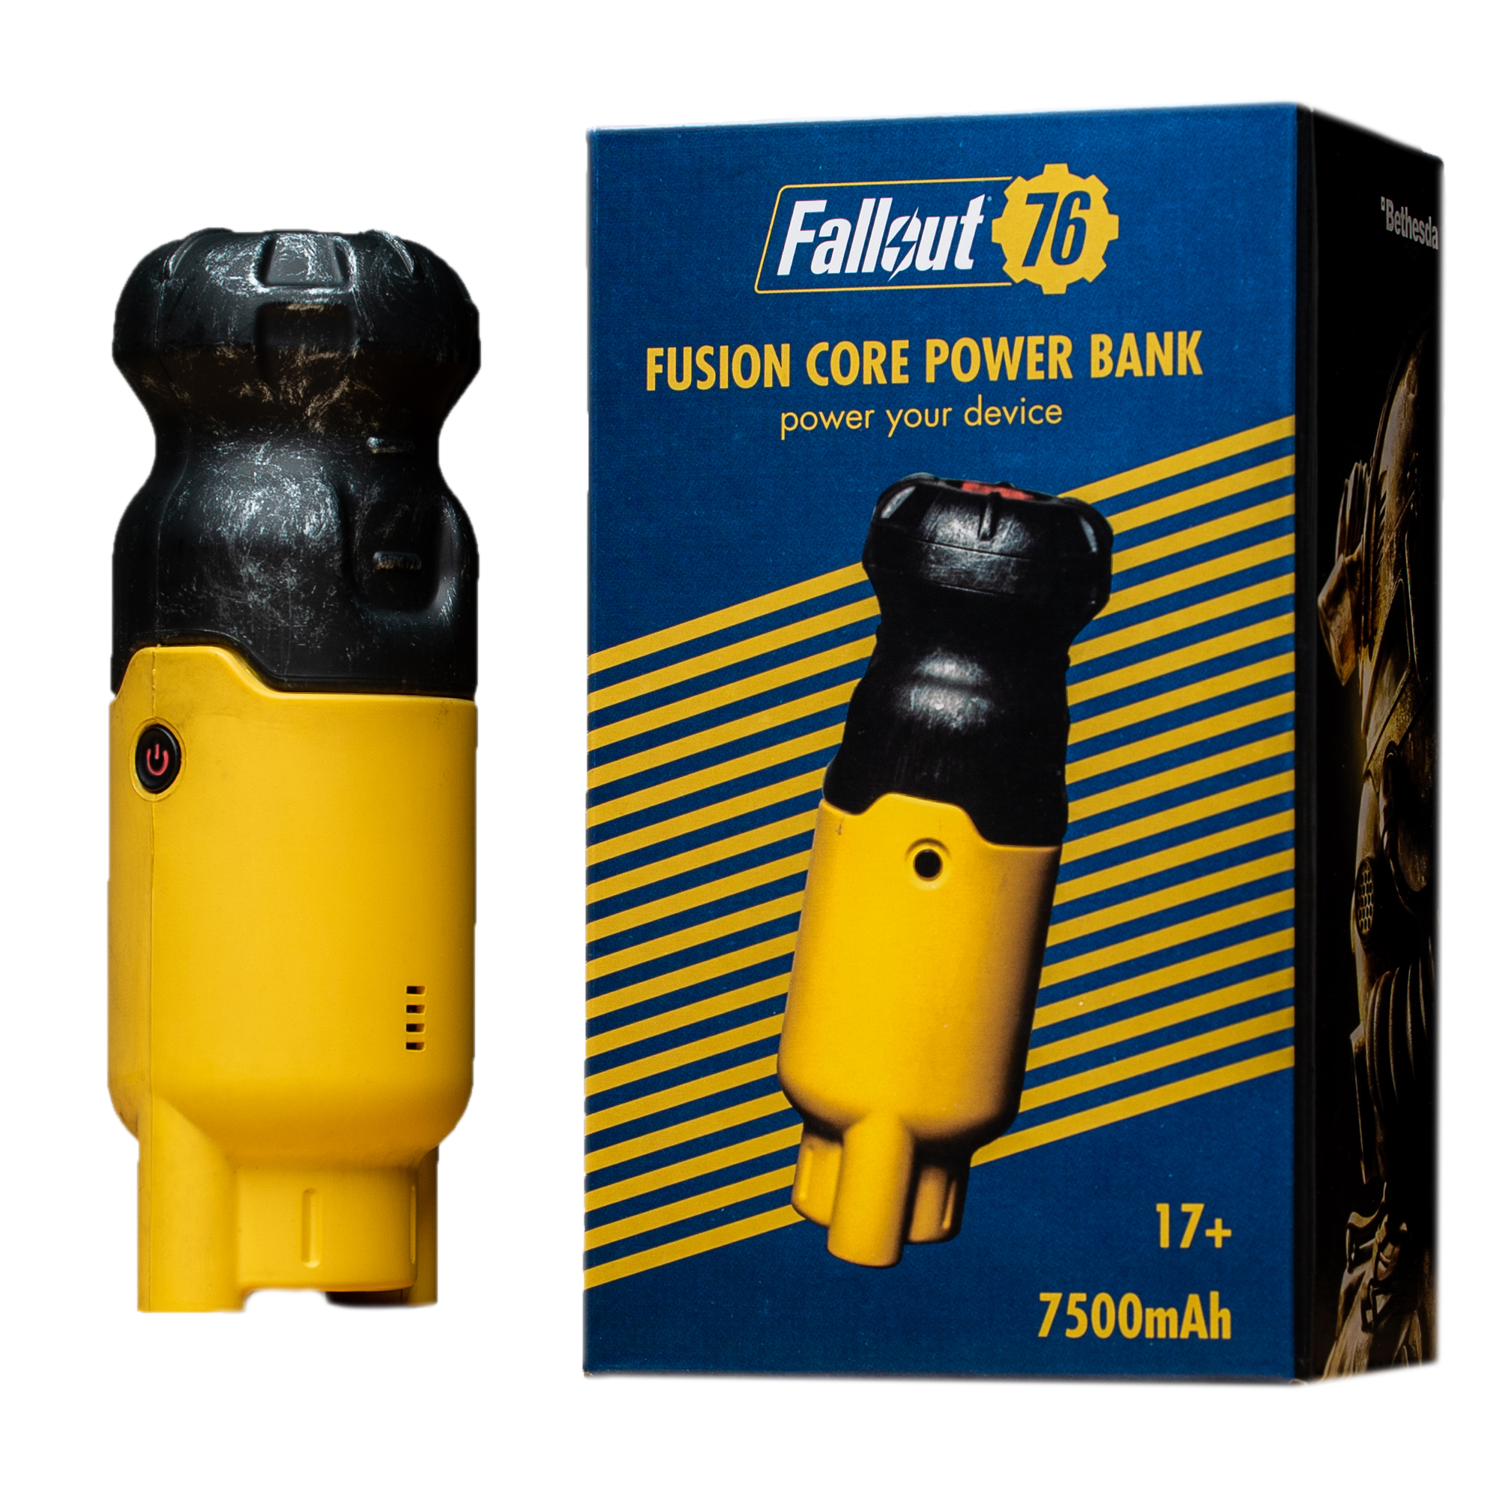 Fallout Powerbank Fusion Core Other Accessories The